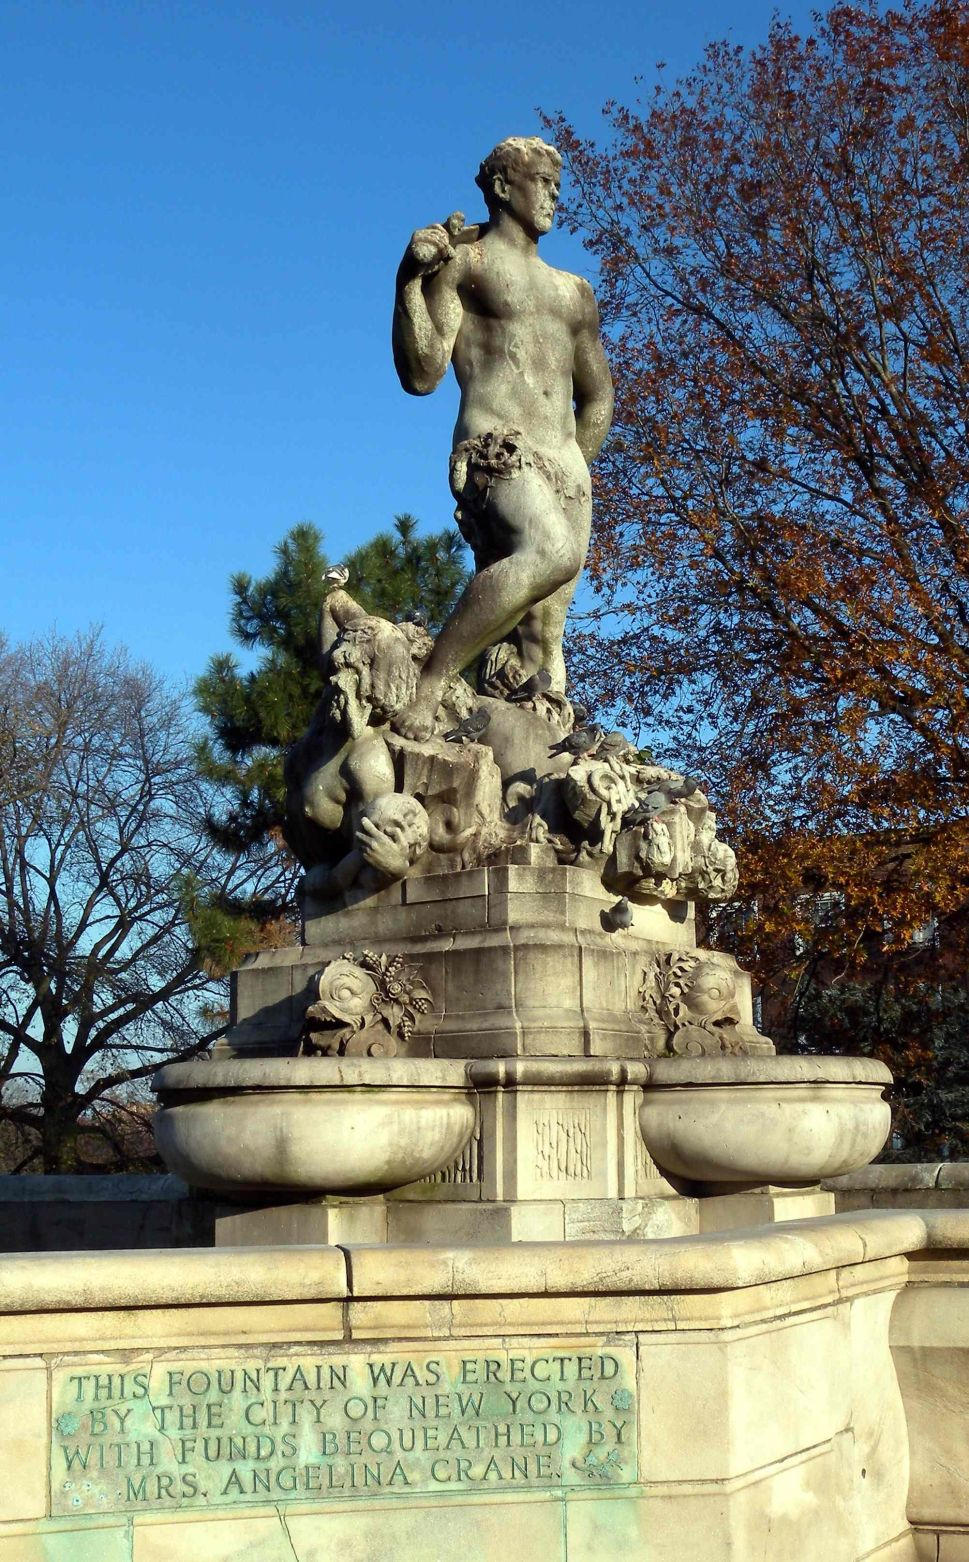 Somewhat Sexist Statue Seriously Not Welcome in Queens